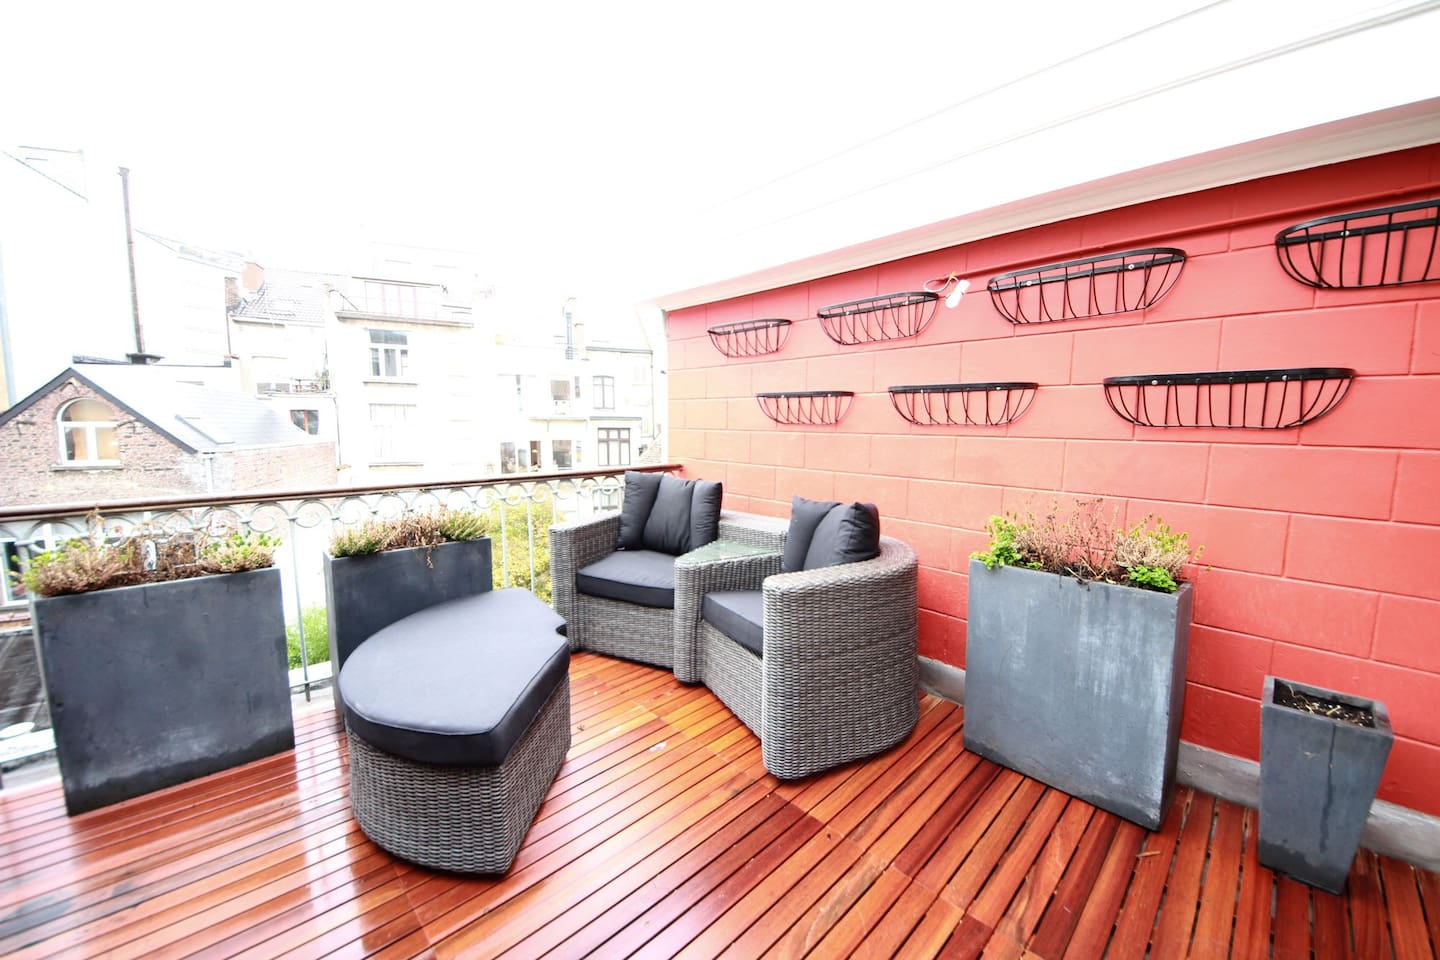 A terrace: perfect for relaxing under the sun or the stars!